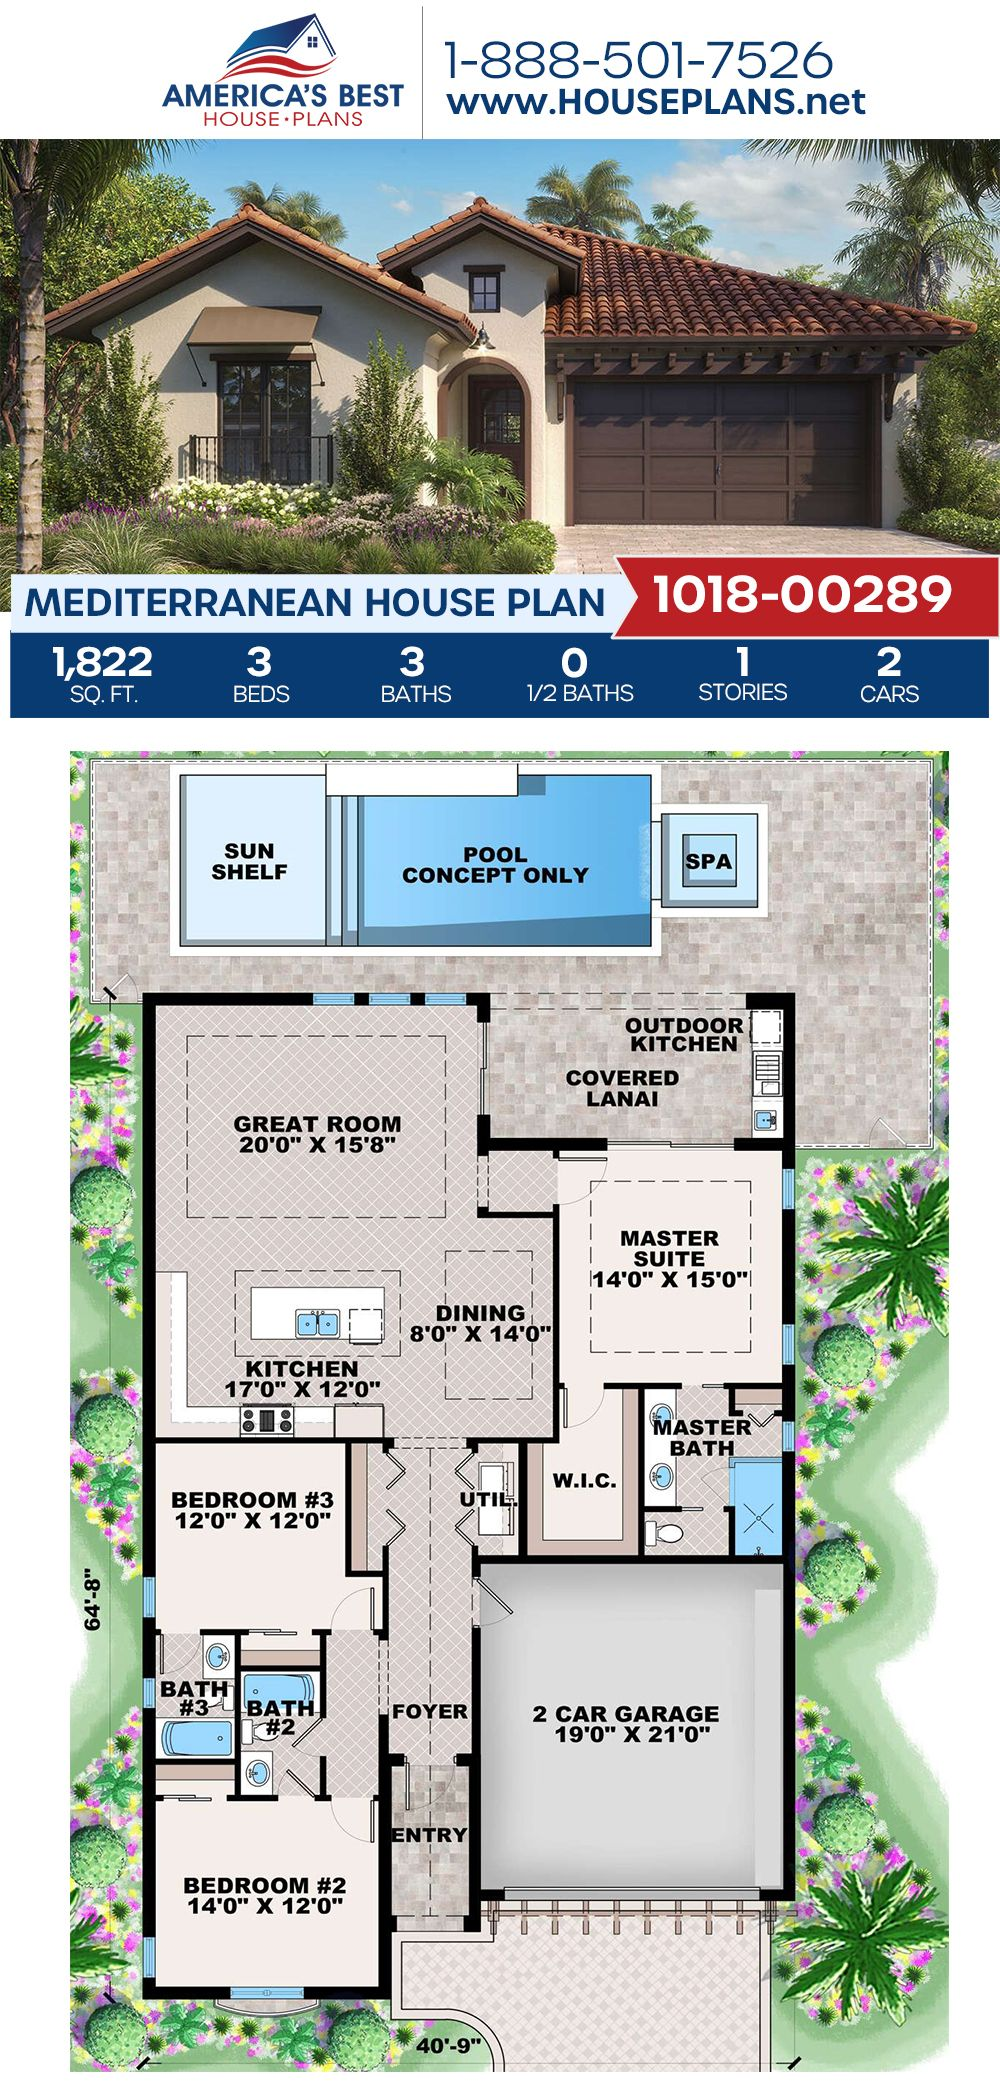 House Plan 1018 00289 Mediterranean Plan 1 822 Square Feet 3 Bedrooms 3 Bathrooms Mediterranean House Plan Mediterranean Style House Plans Mediterranean House Plans